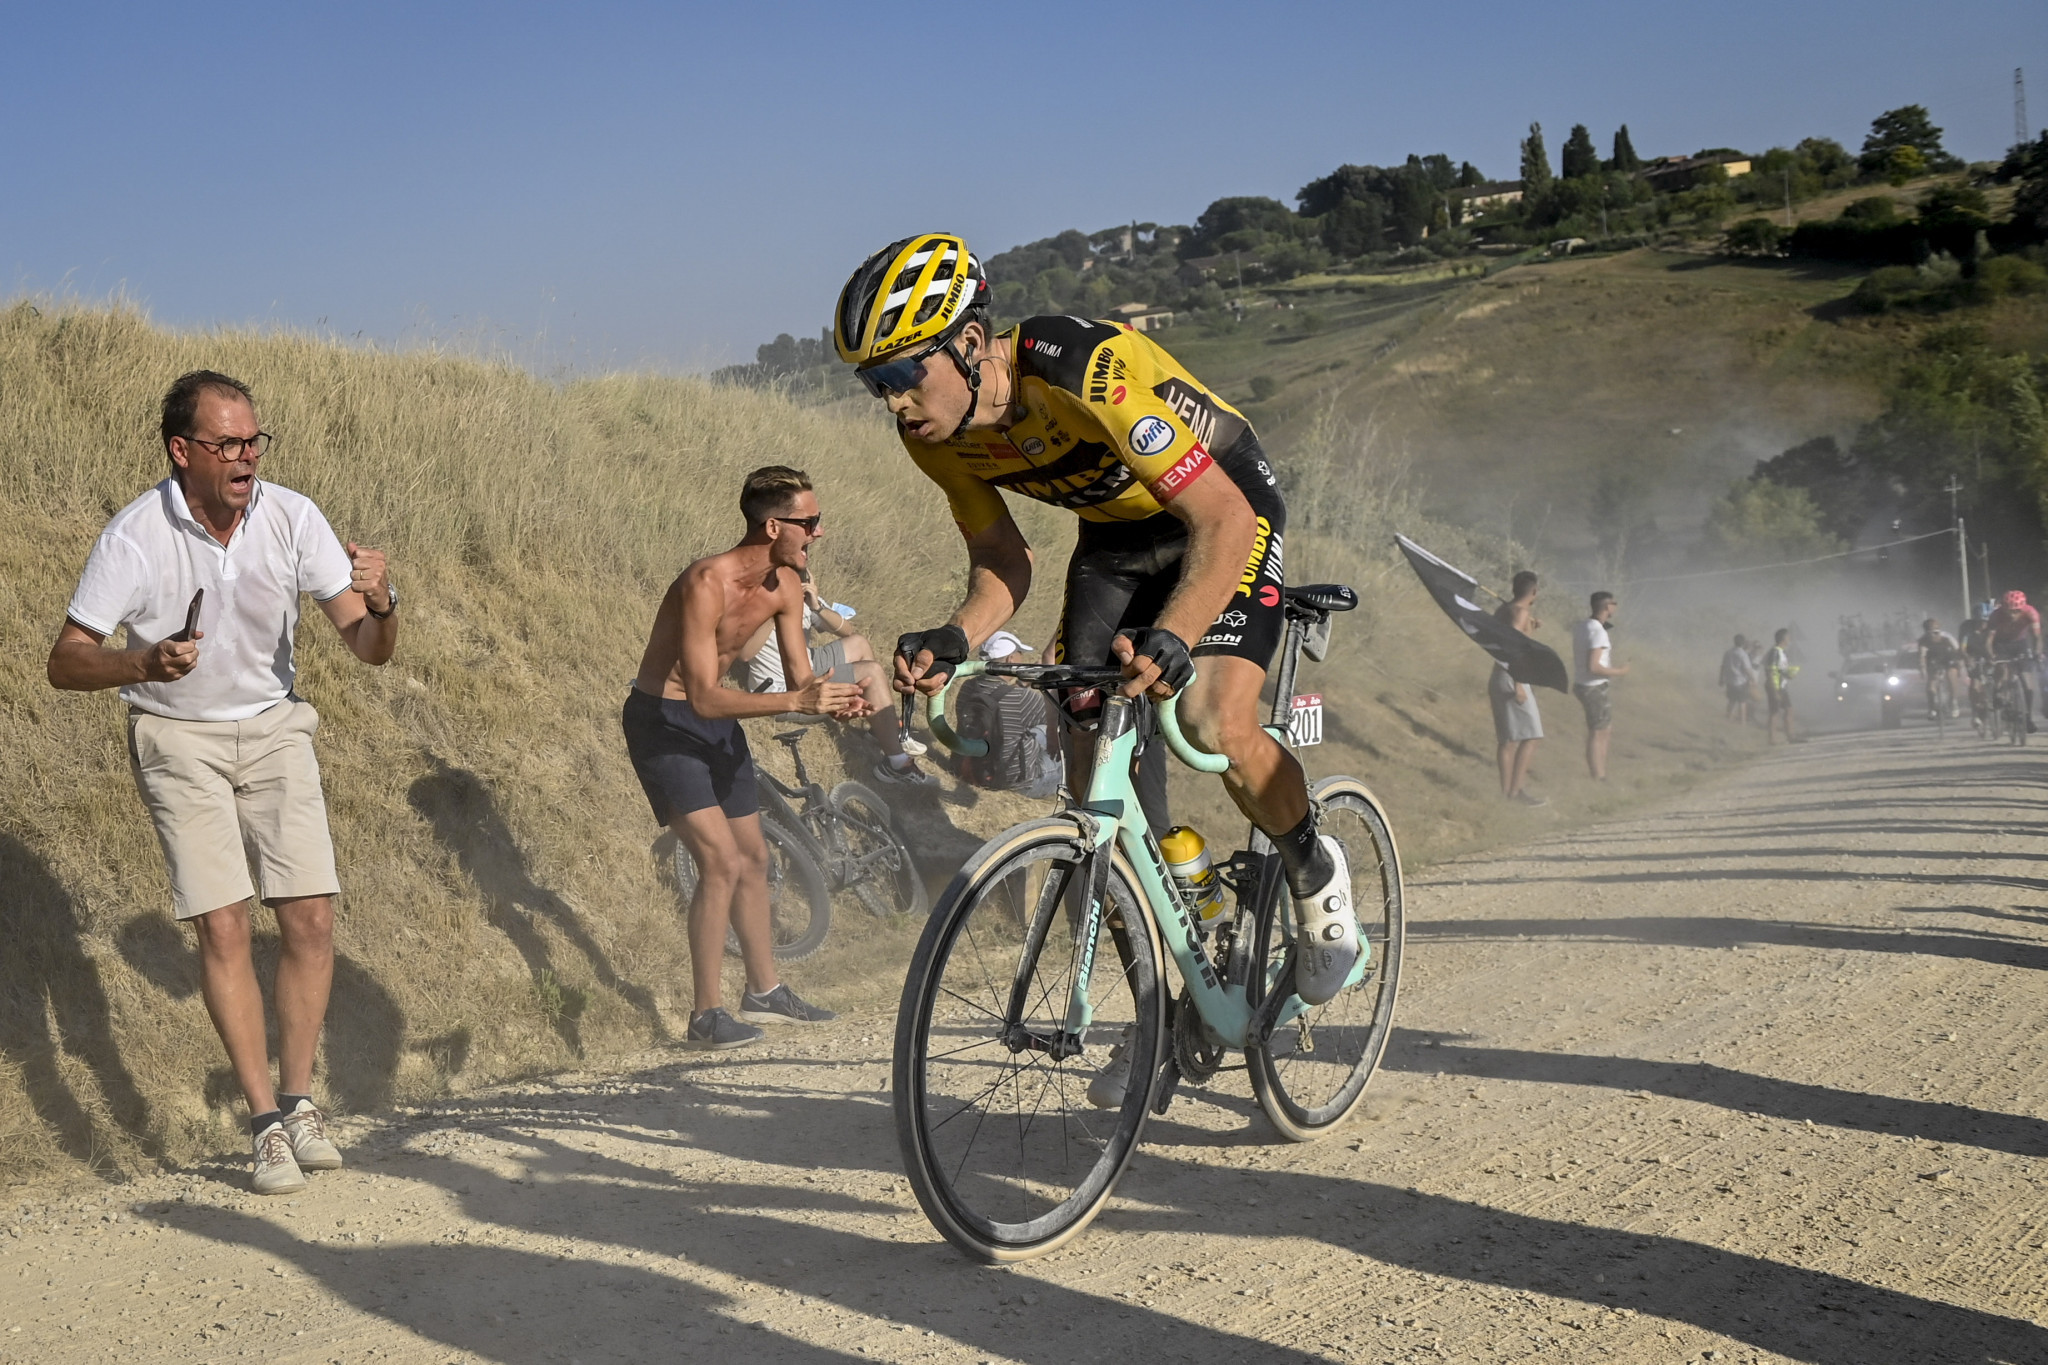 Wout van Aert will be looking to defend the Strade Bianche title ©Getty Images